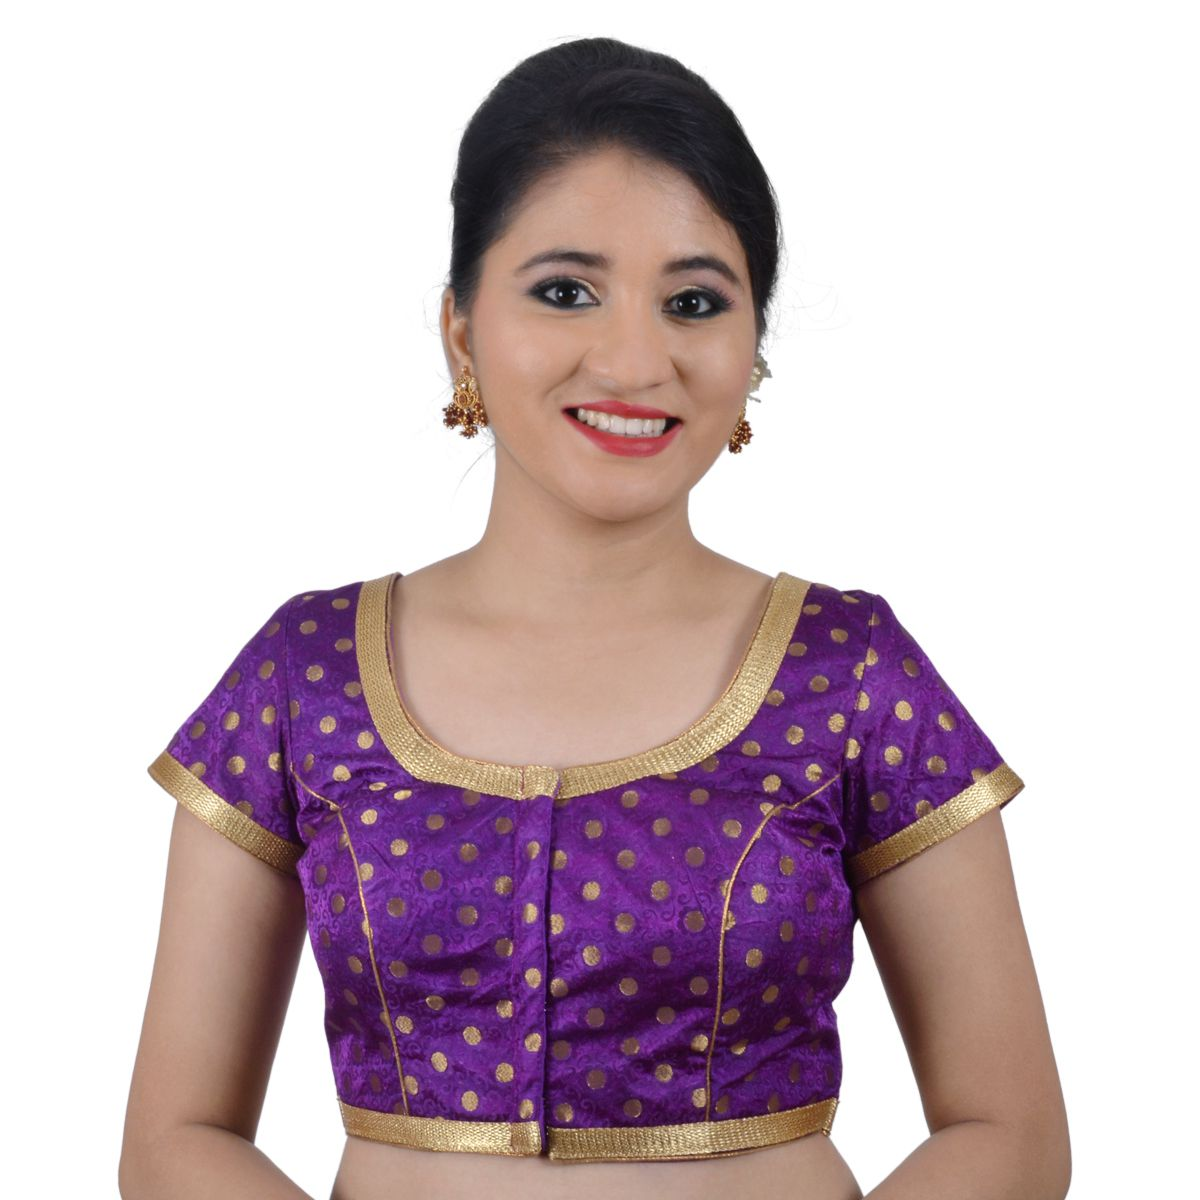 6395107ccb NAMI Purple Brocade Readymade with Pad Blouse - Buy NAMI Purple Brocade  Readymade with Pad Blouse Online at Low Price - Snapdeal.com